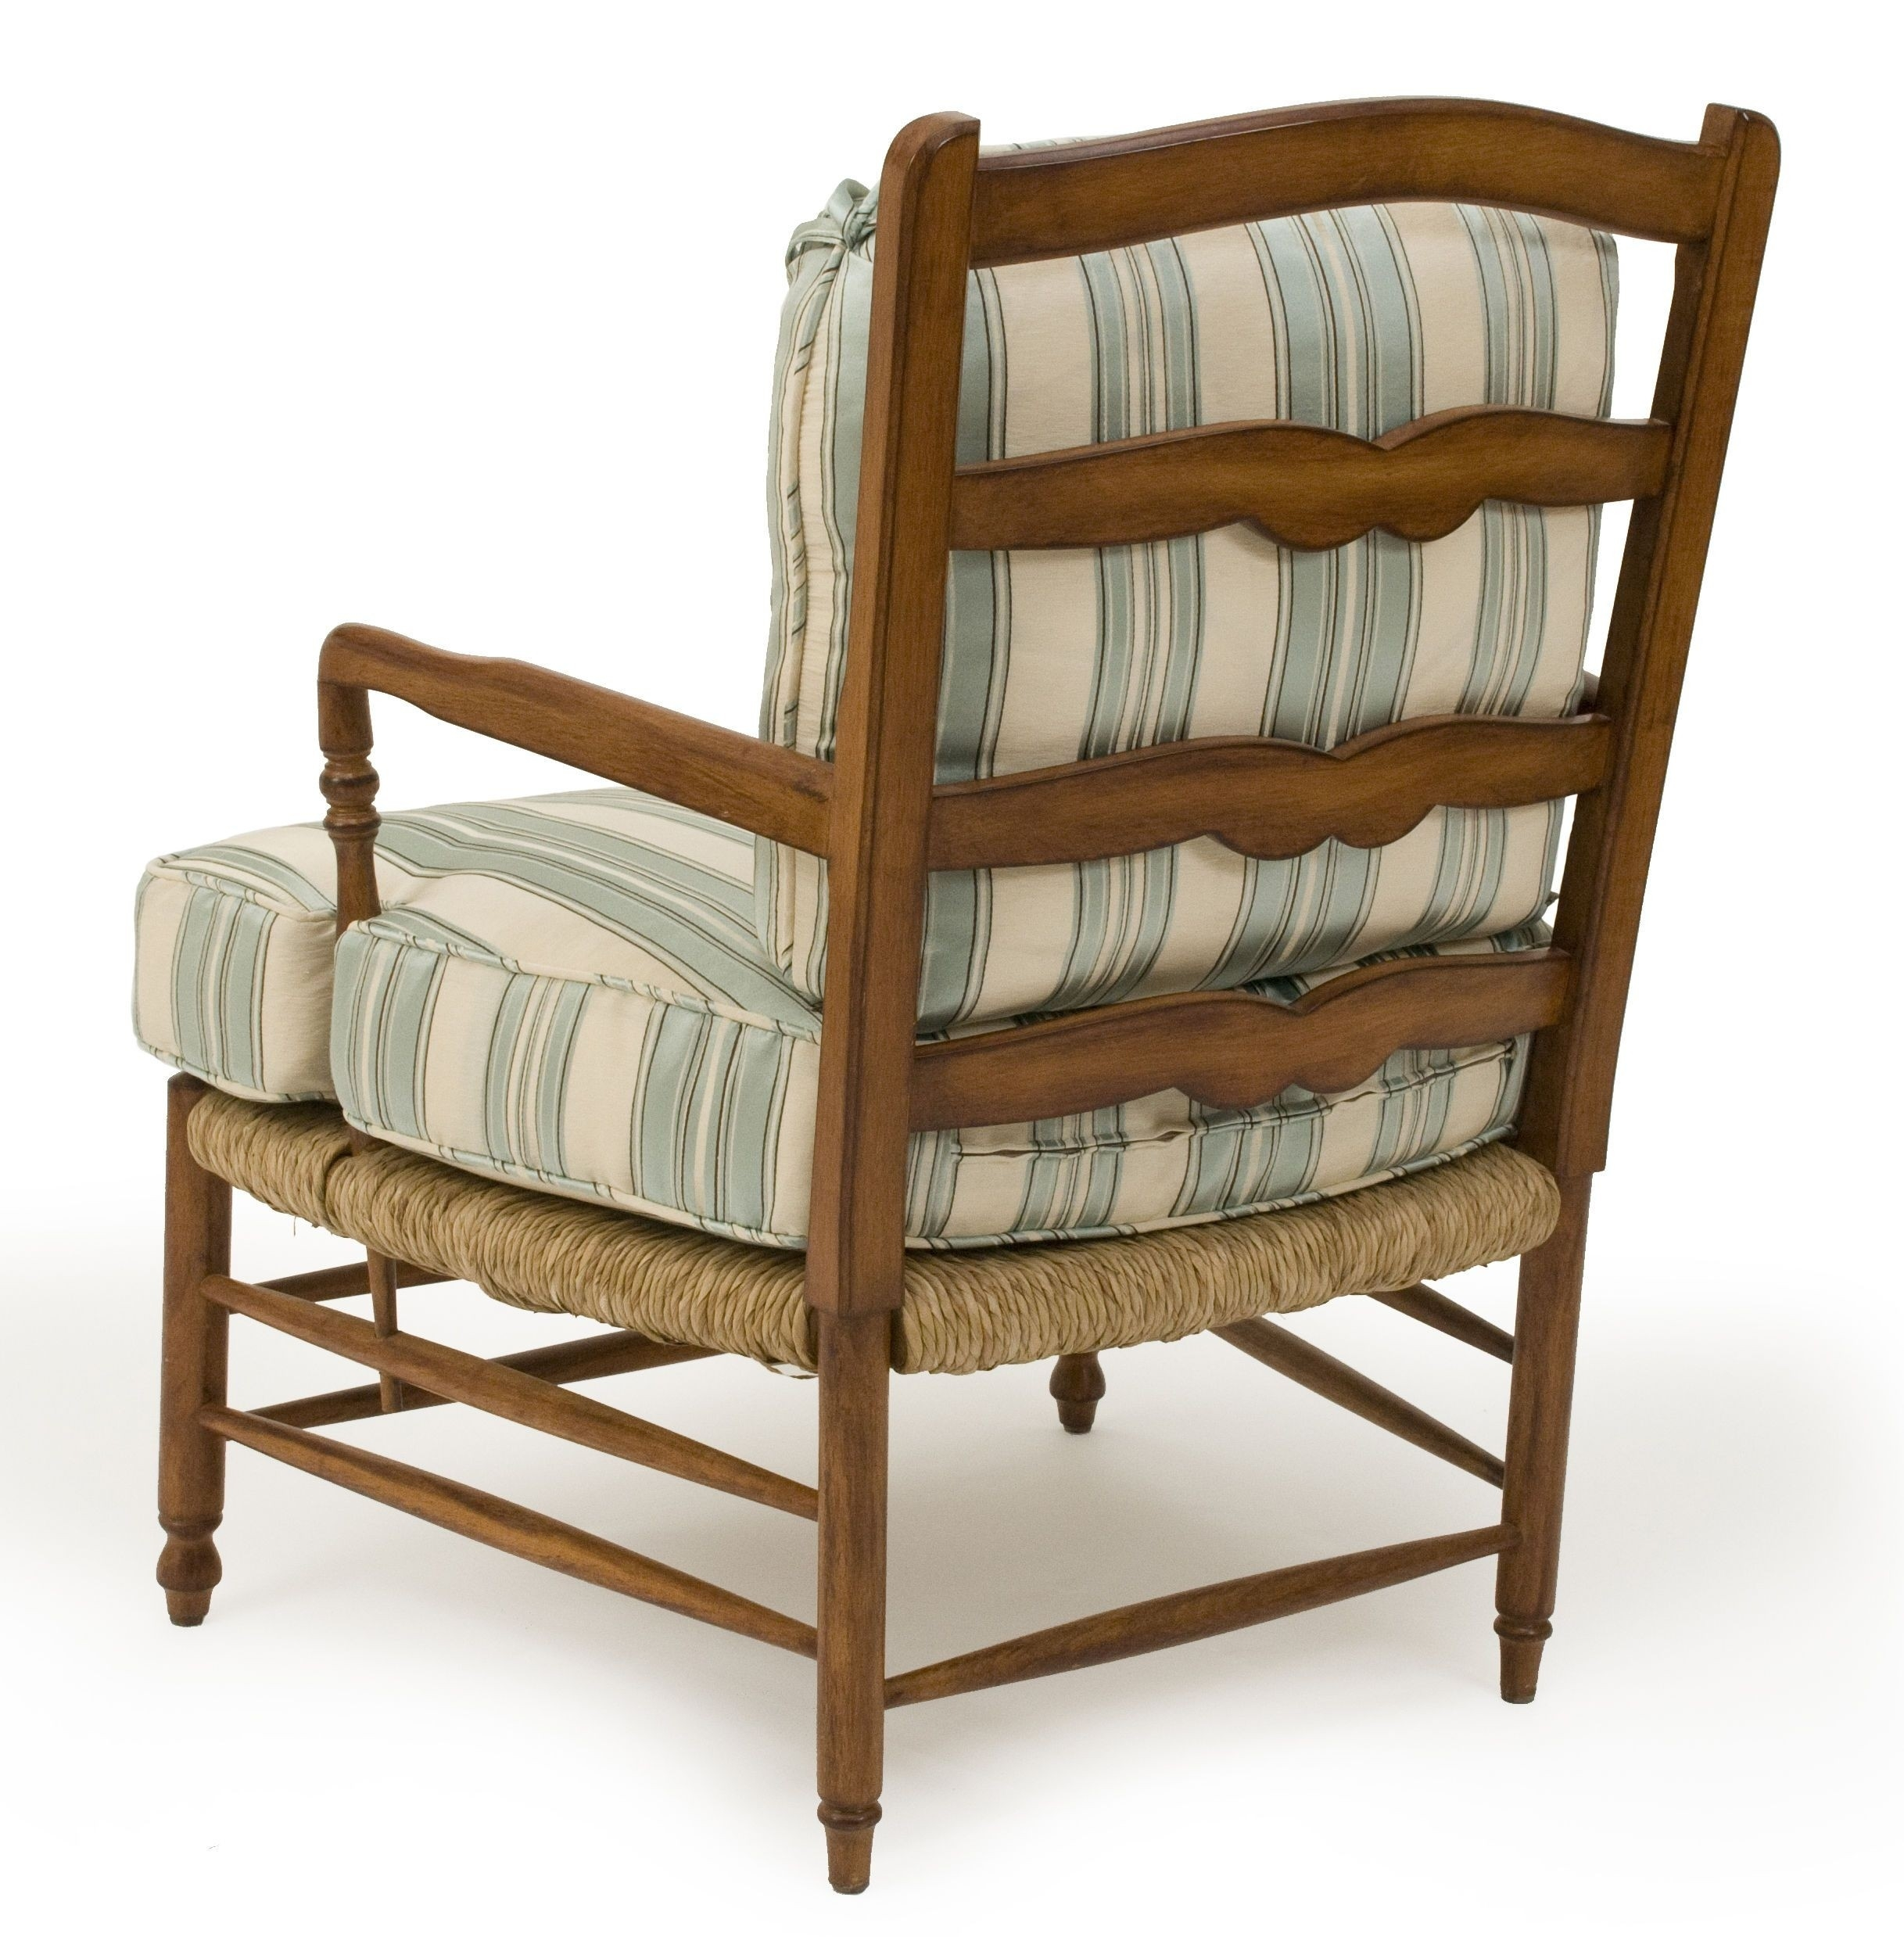 Ladder Back Chairs Rush Seats Ideas On Foter